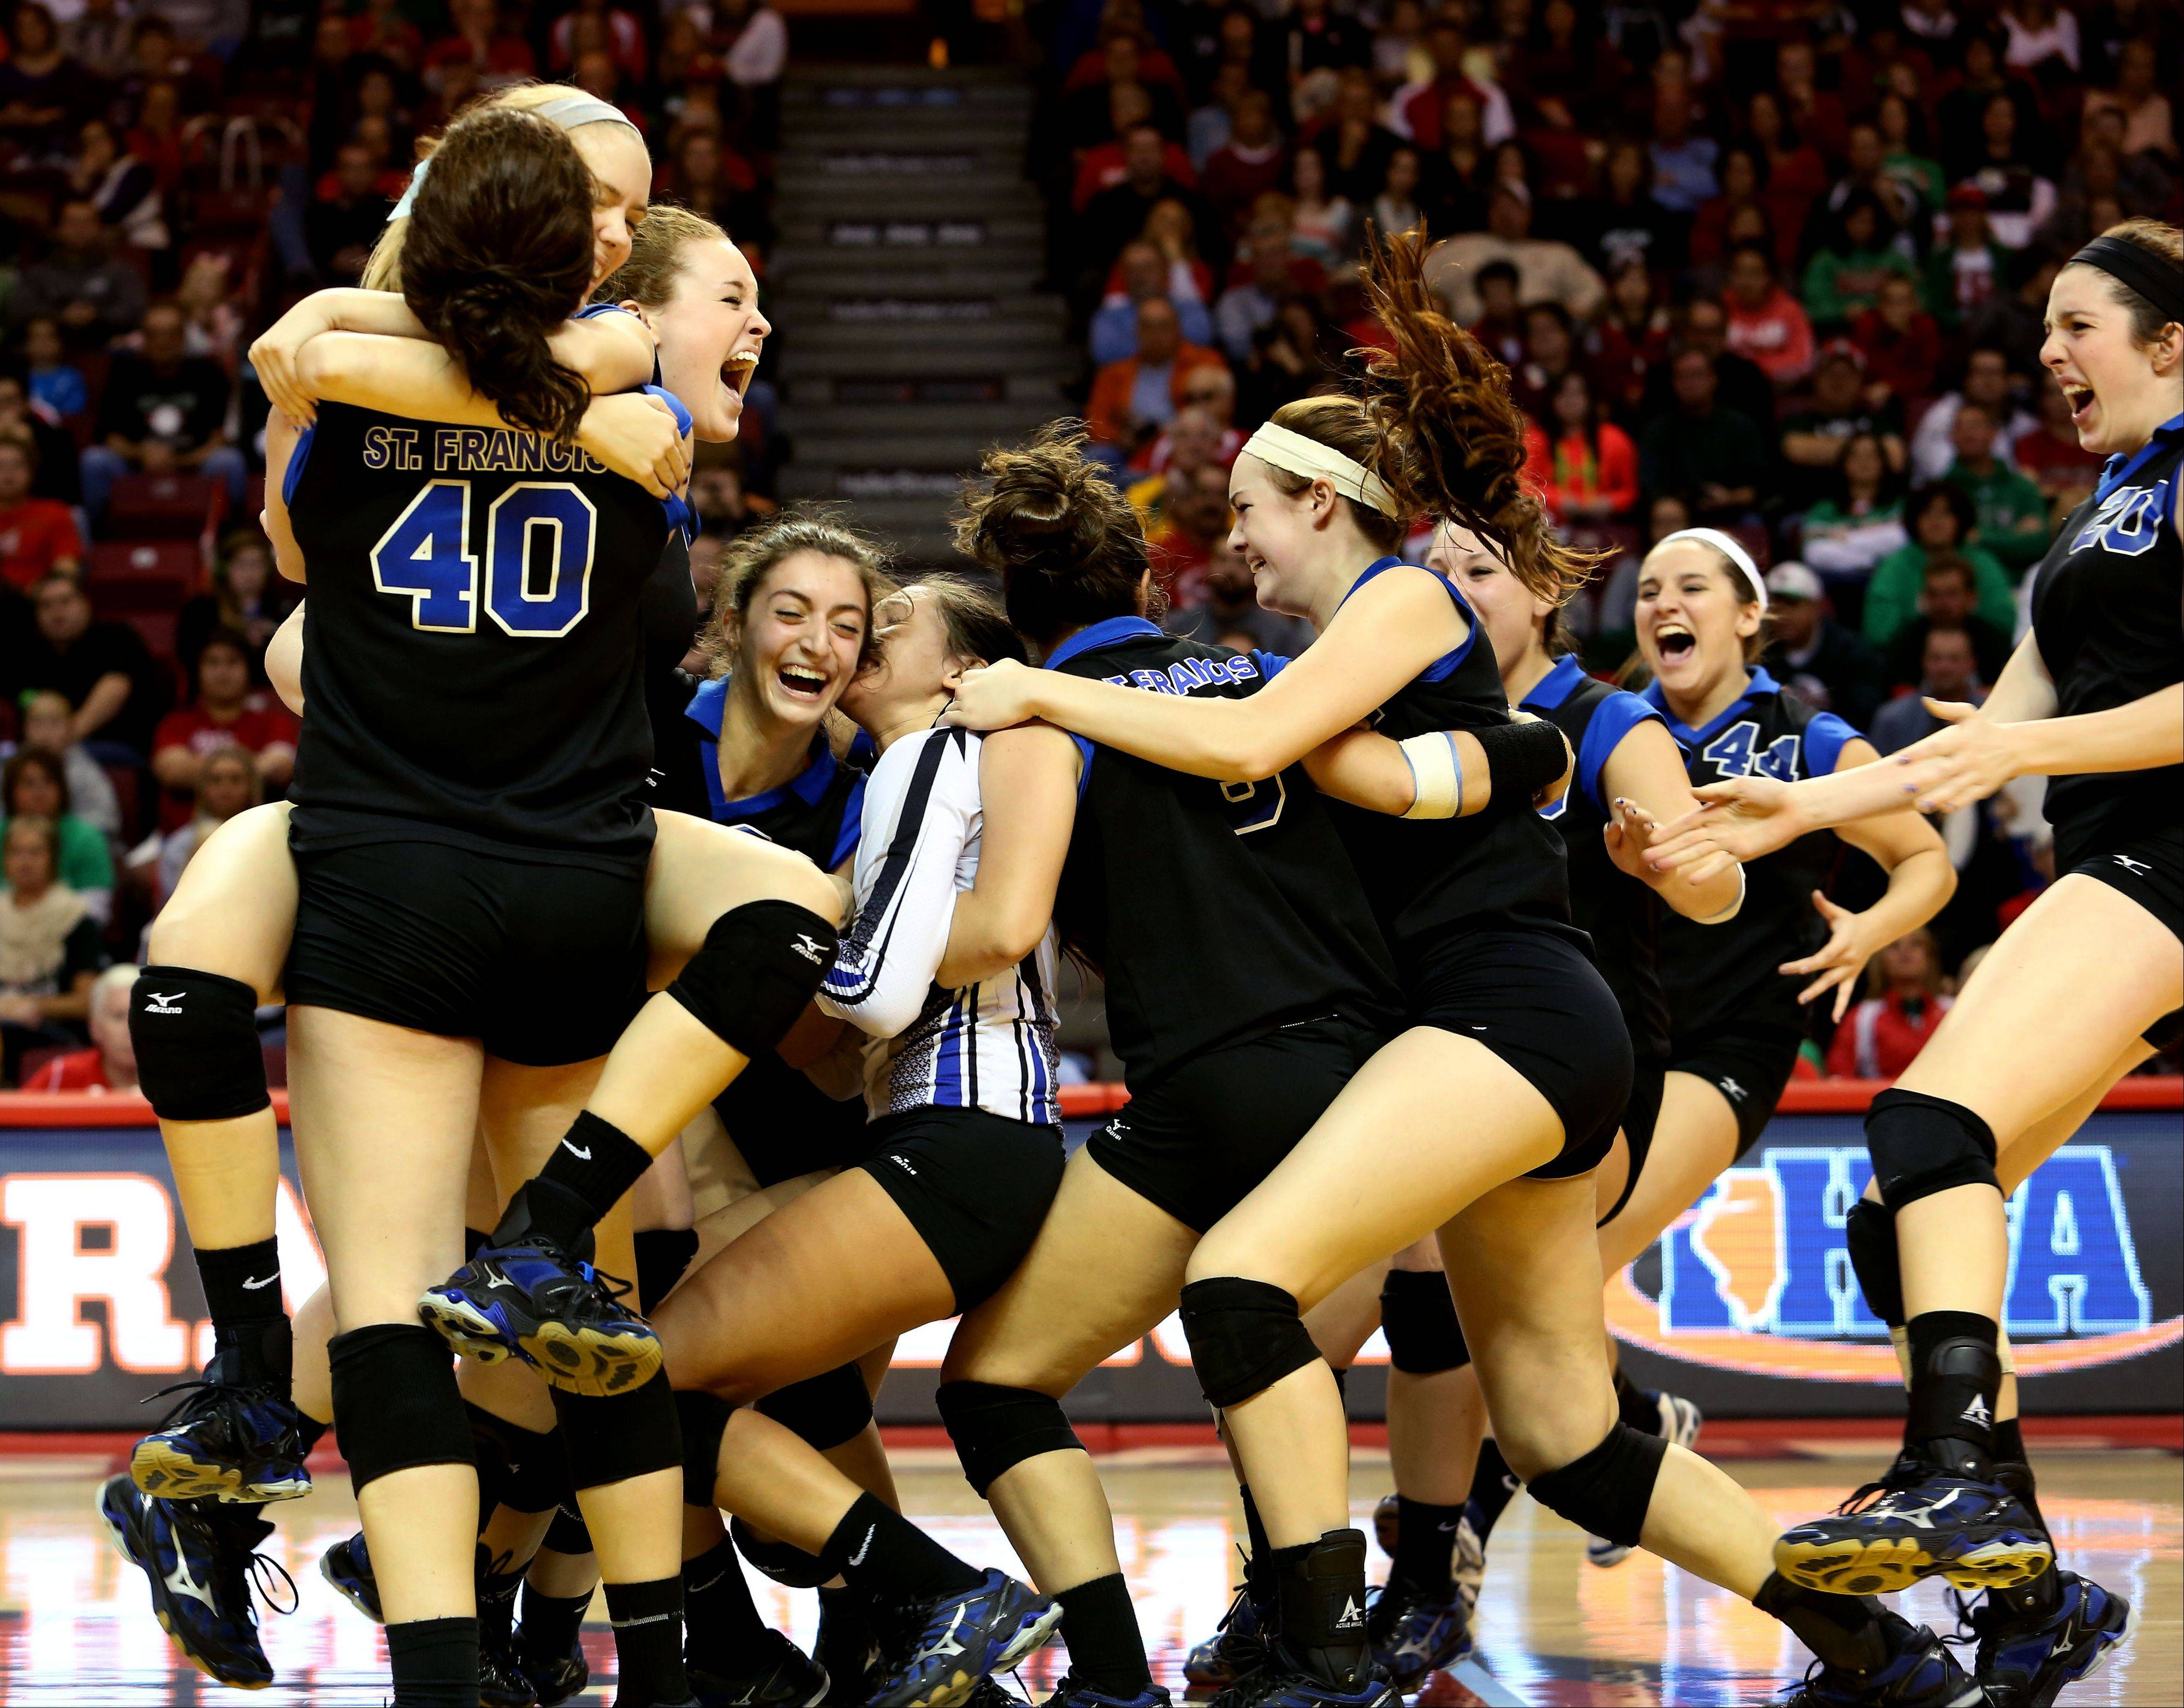 St. Francis players celebrate after beating LaSalle-Peru Saturday in Normal.